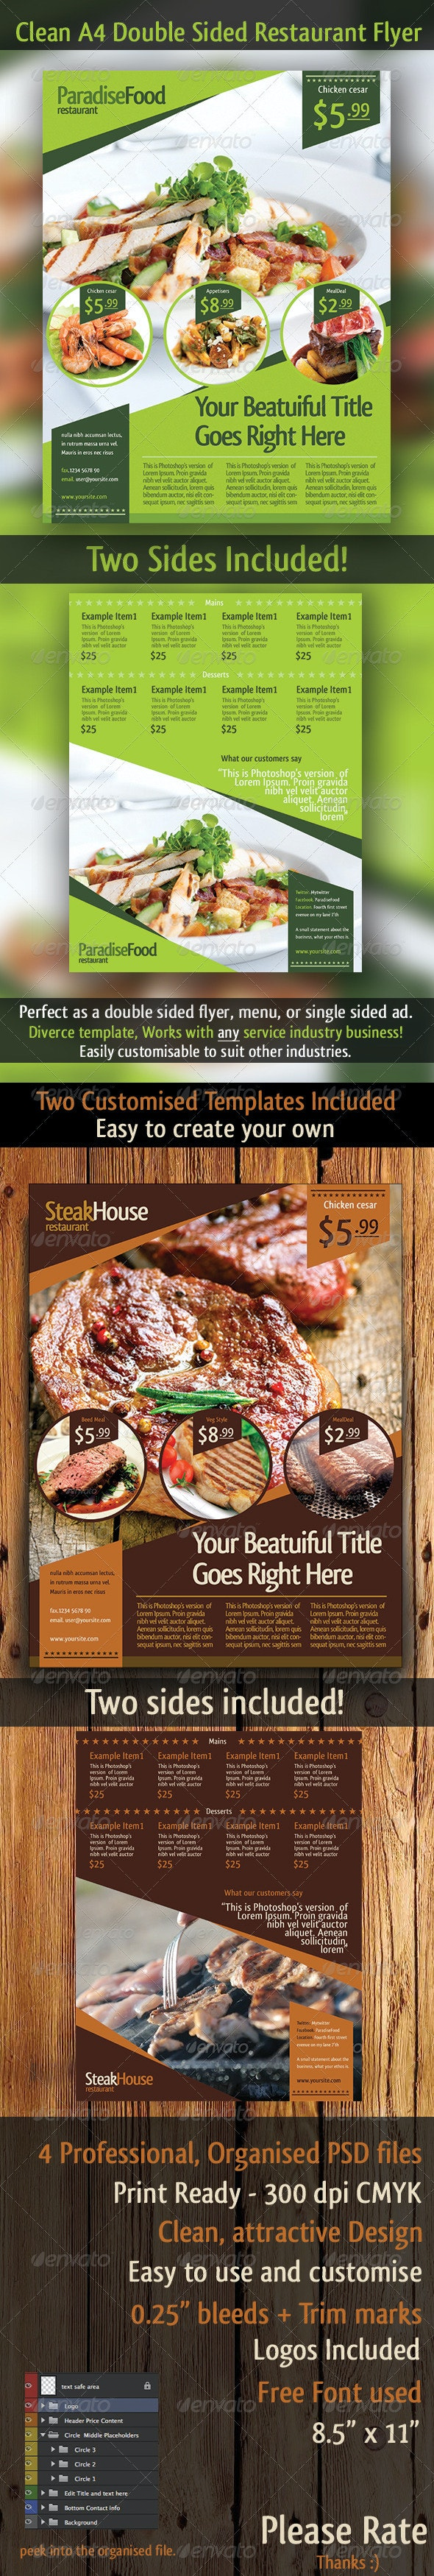 A4 Restaurant Double Sided Flyer Template - Restaurant Flyers